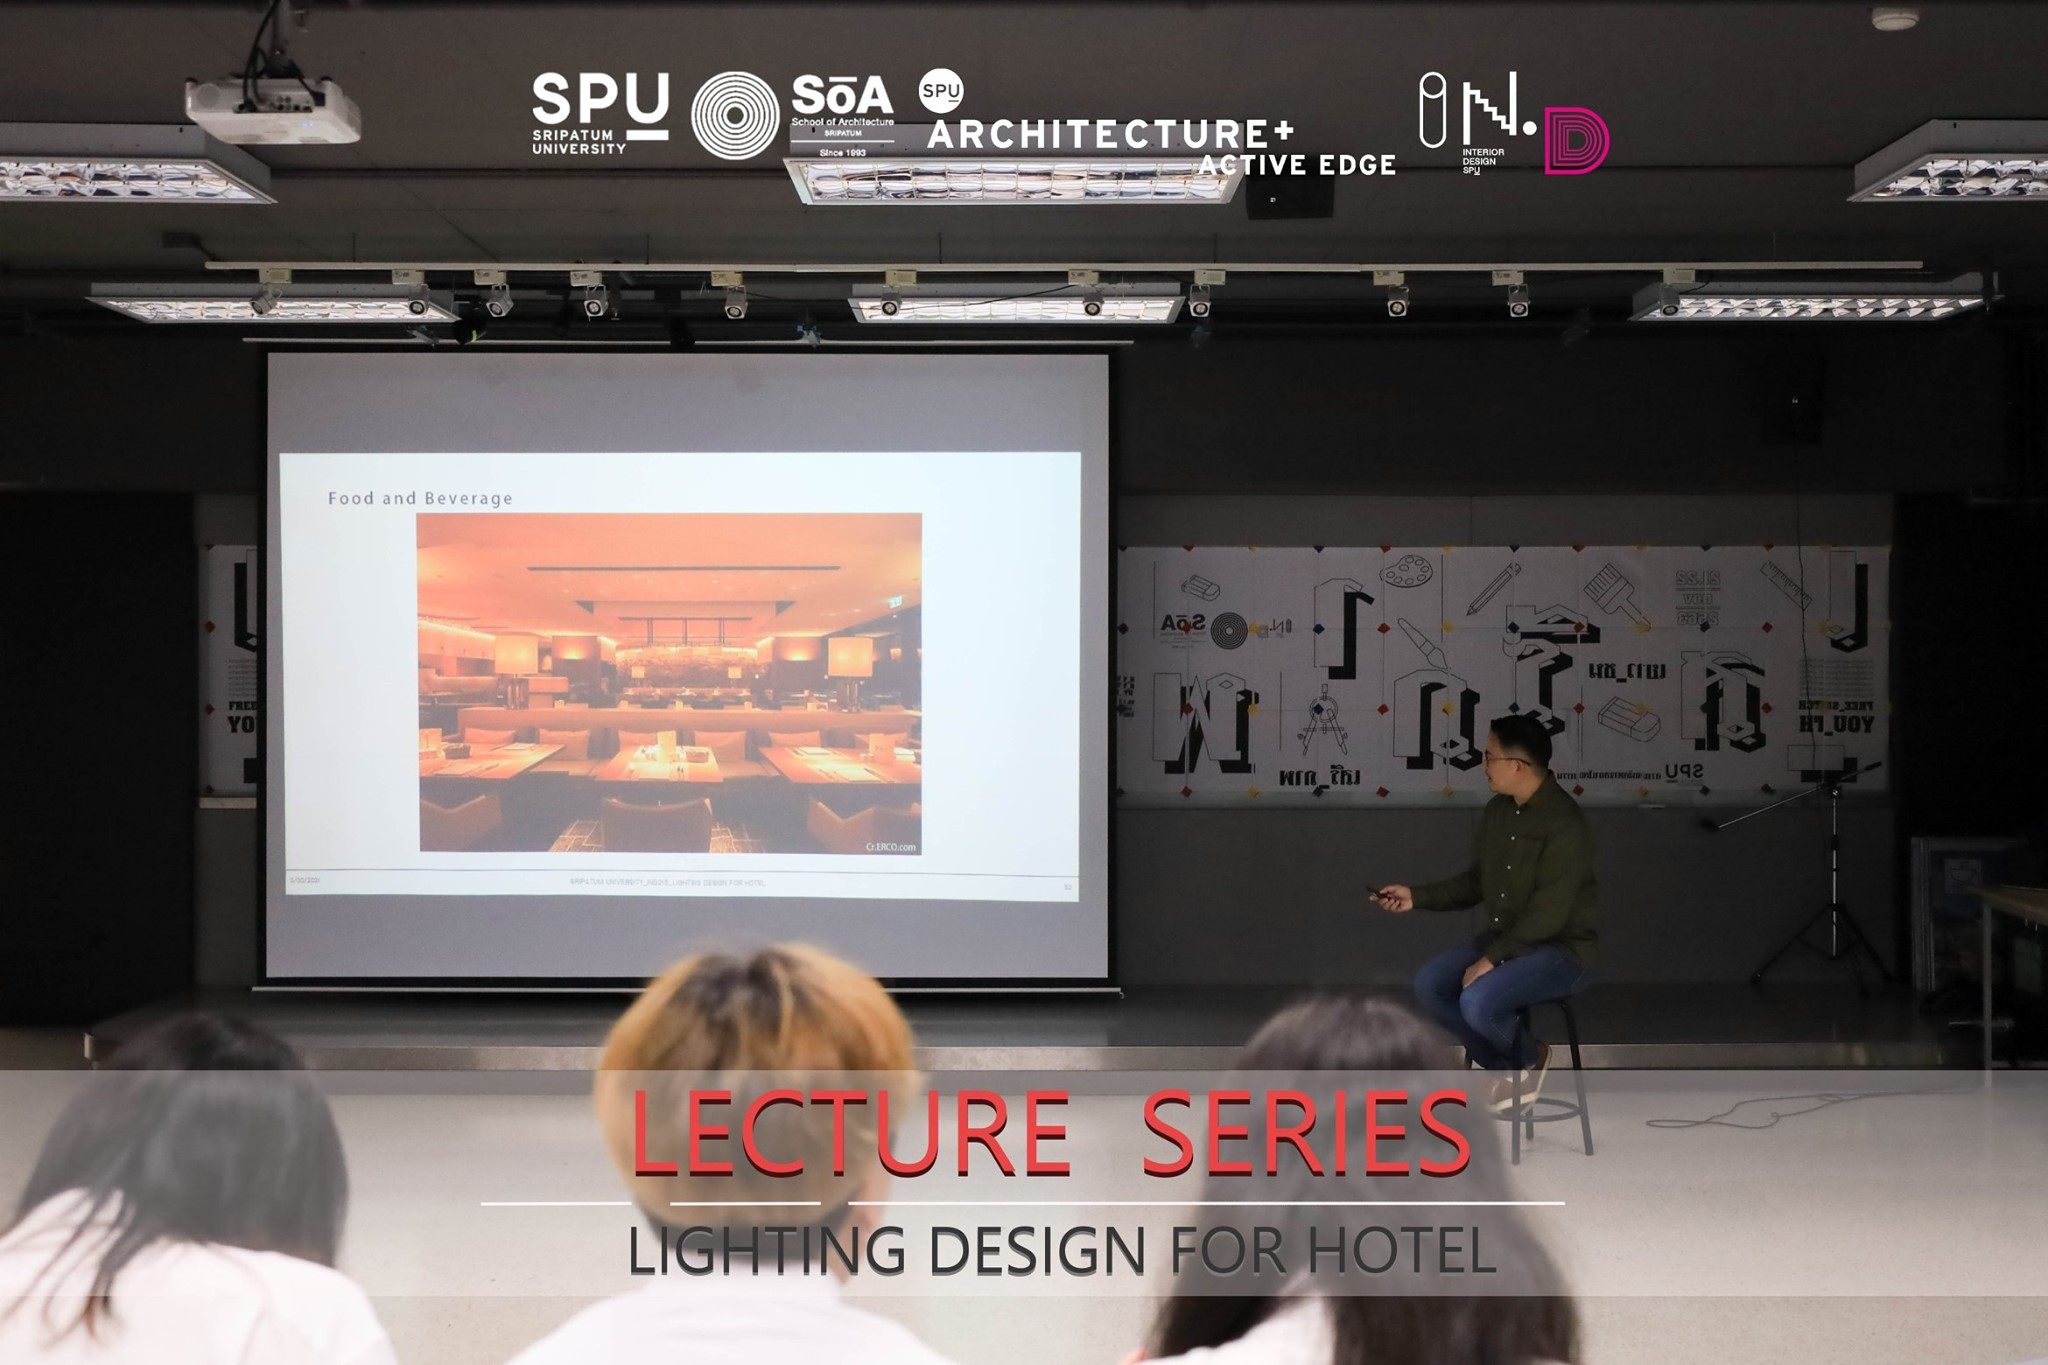 LectureSeries_2_1